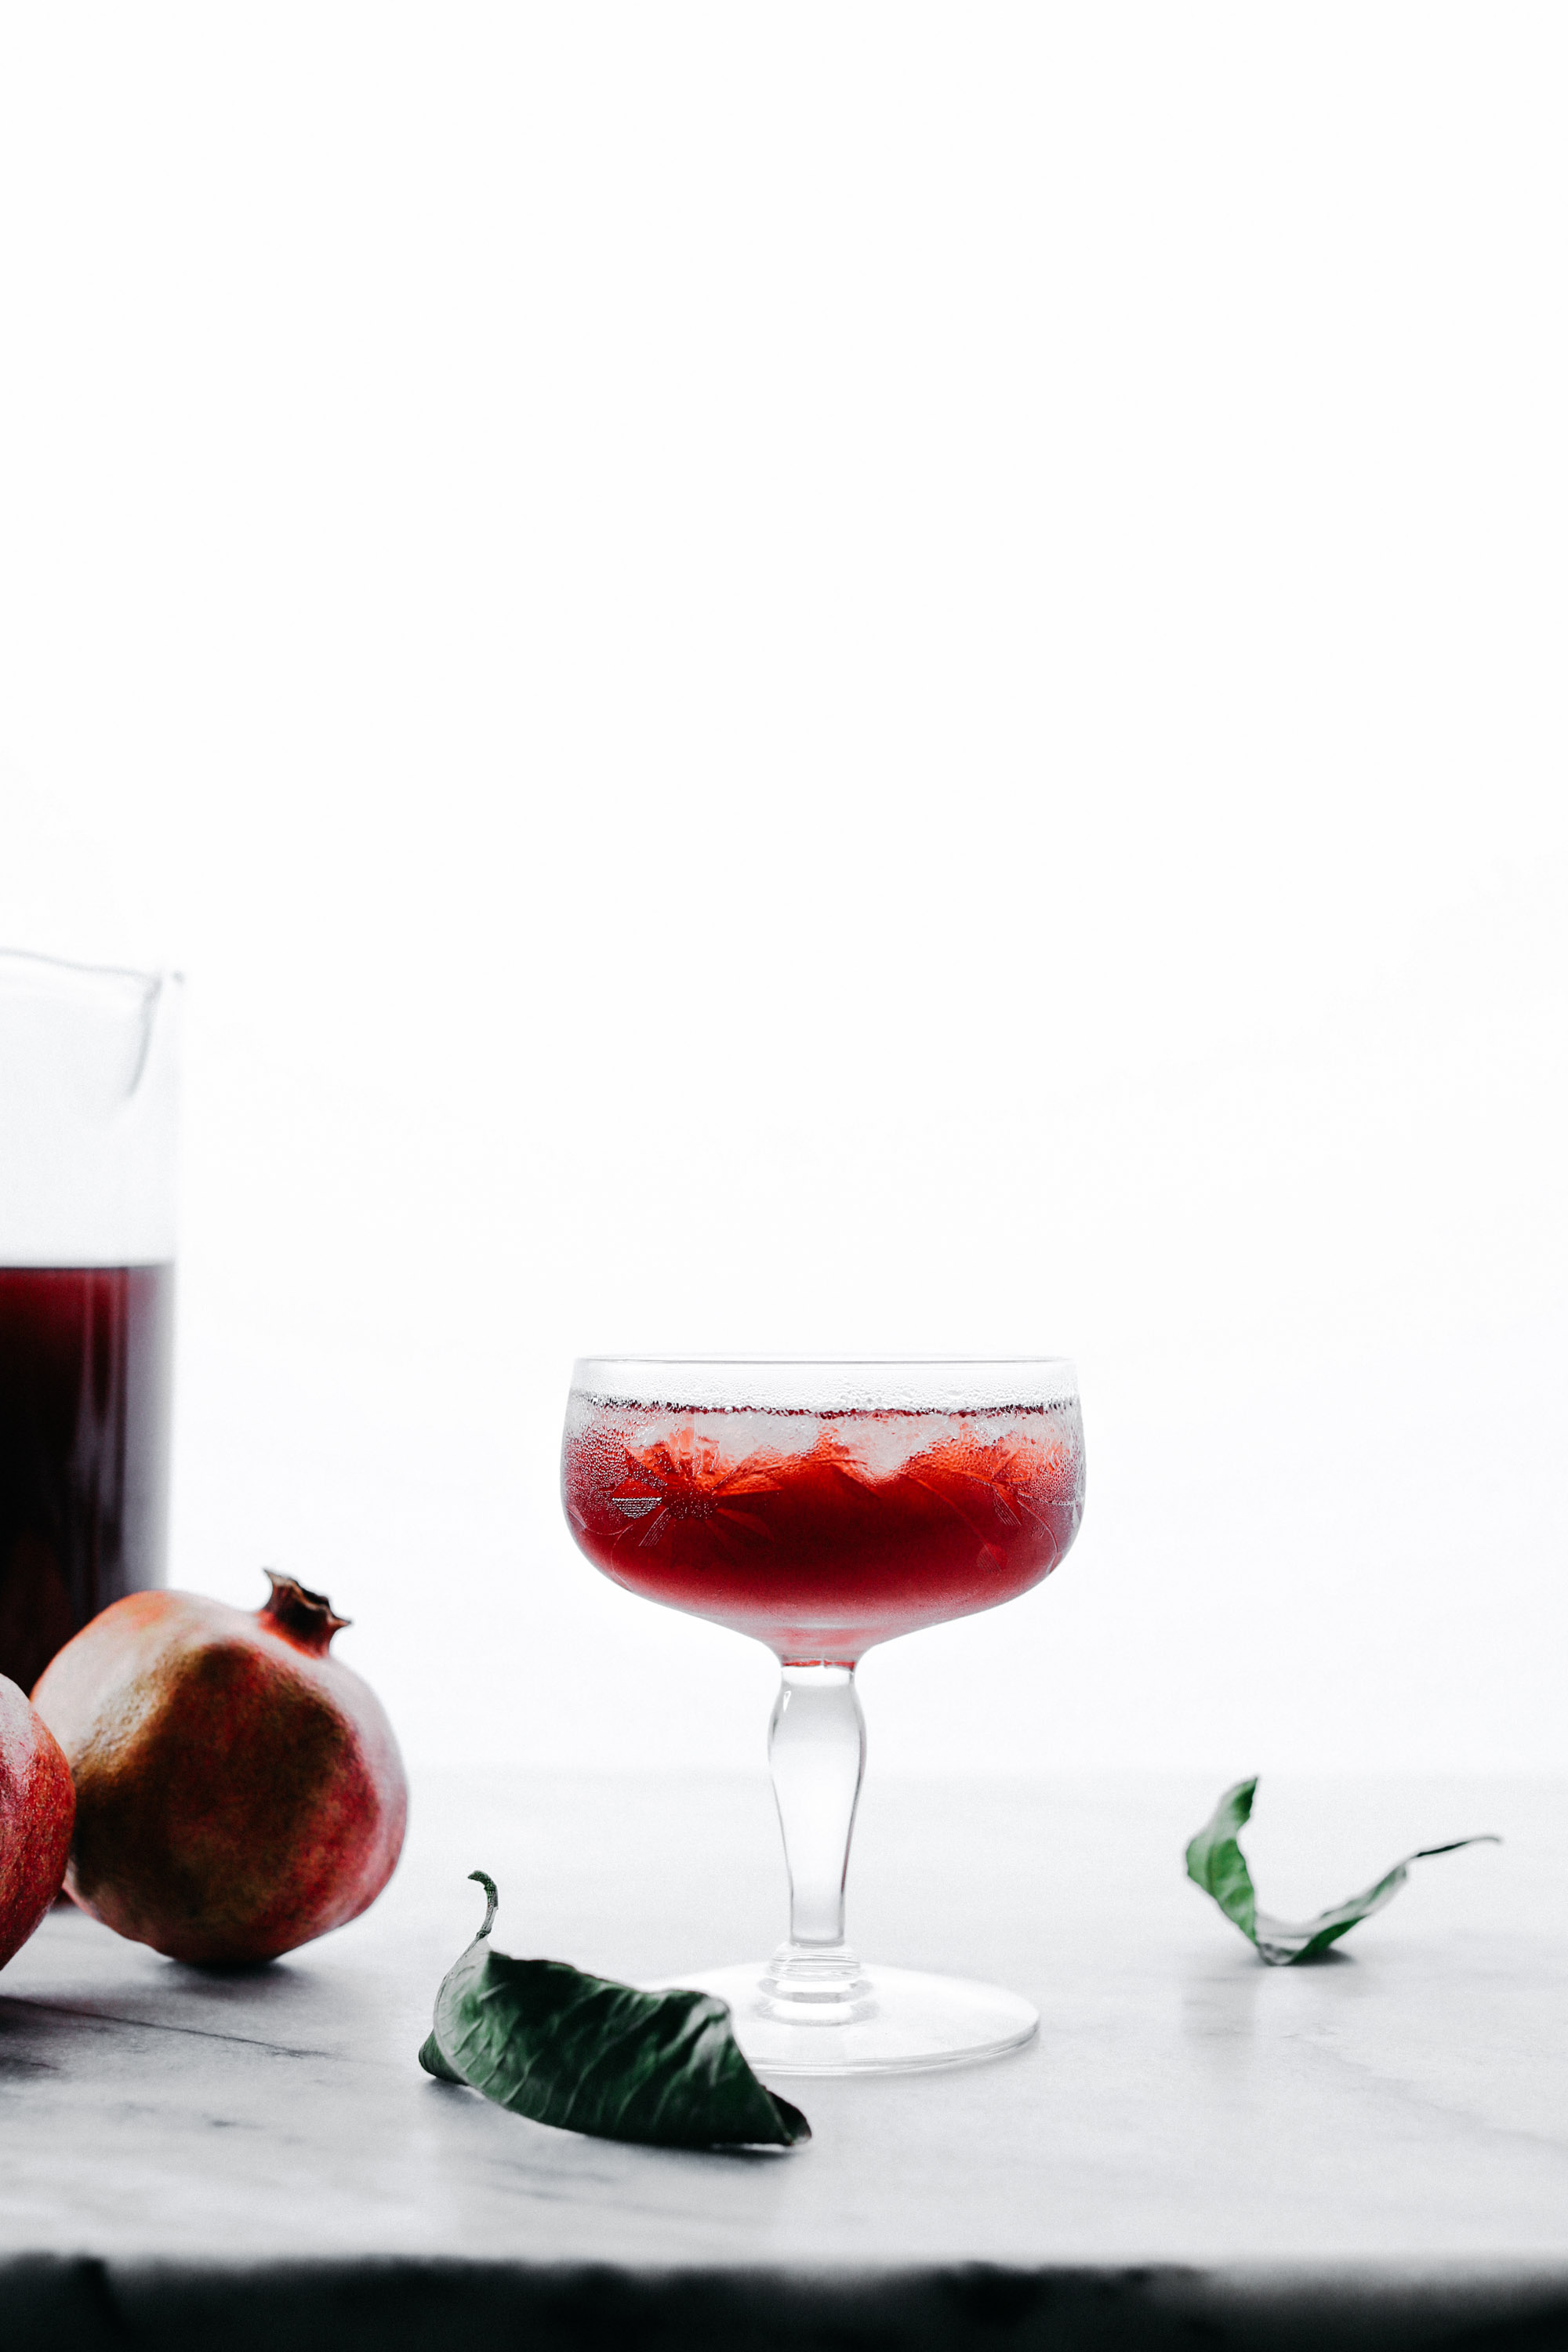 From Red Wine Applesauce Health And >> Tending The Table